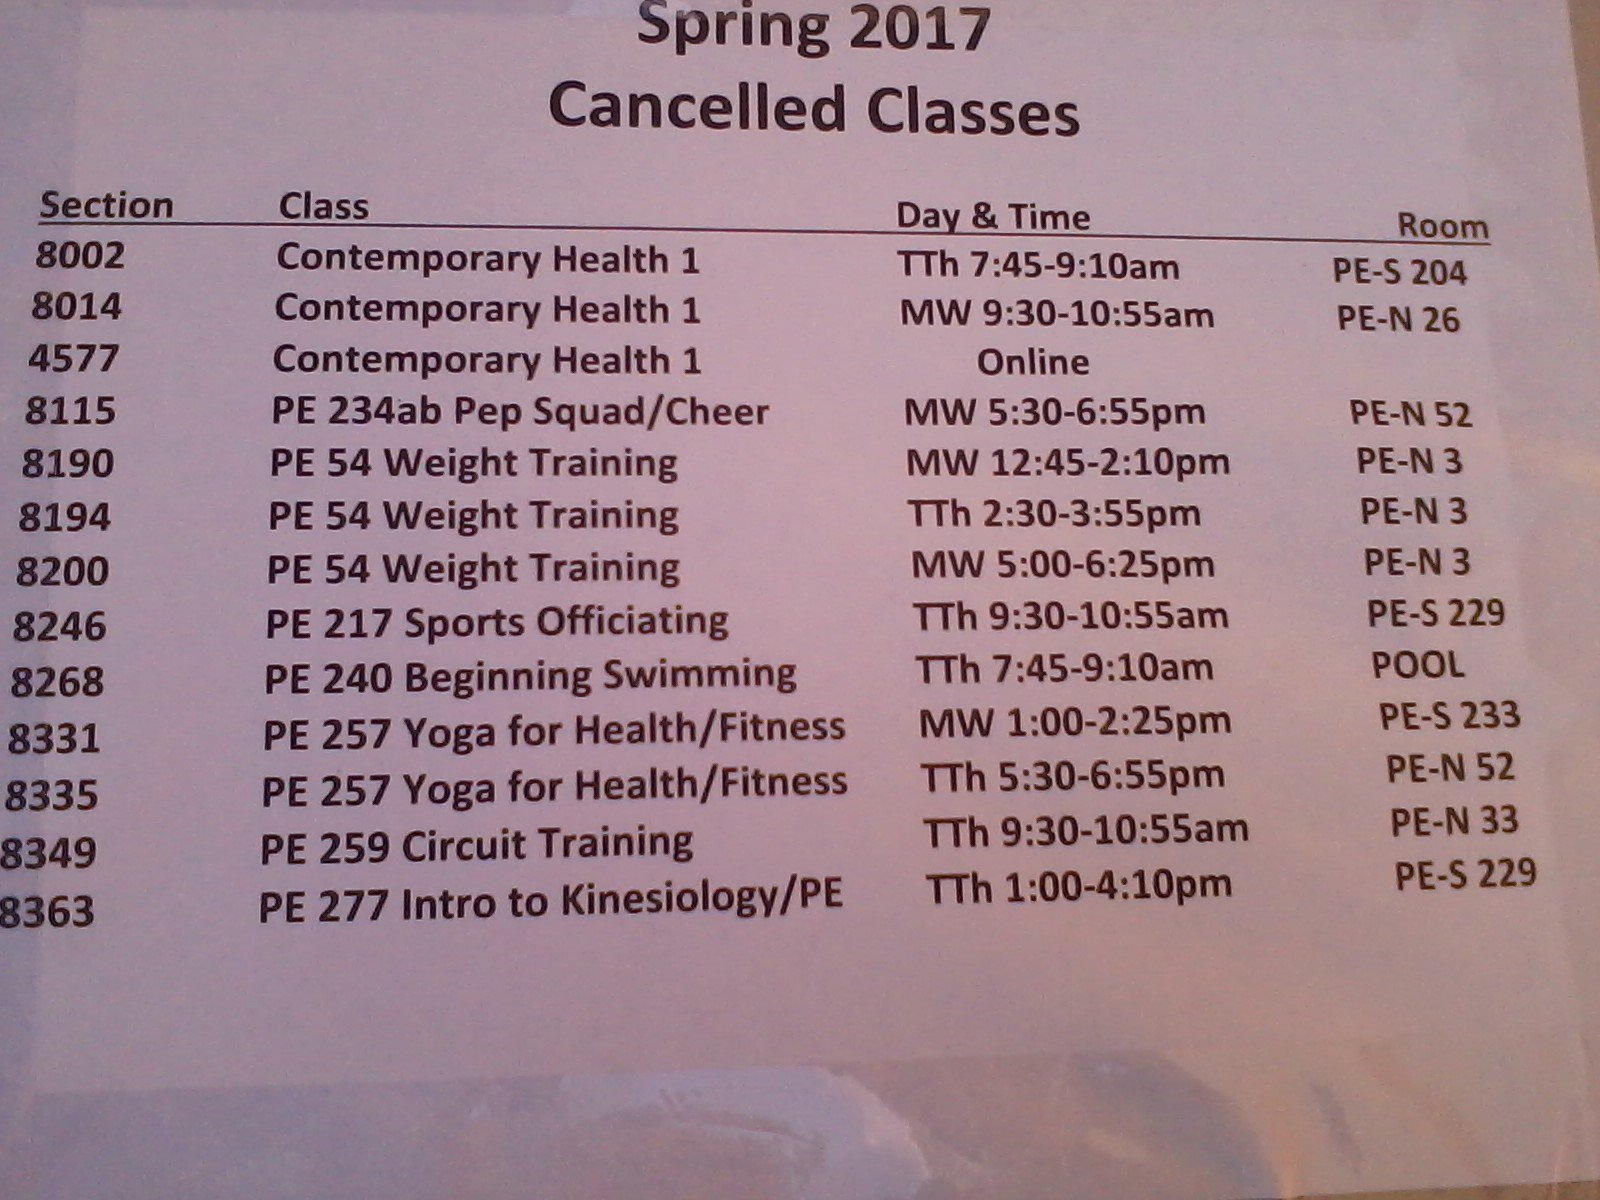 If you considered these PE classes, bad news. However, still plenty of PE classes looking for student adds; lists @ PE North bldg. #eccunion https://t.co/F5rz6VIXCN